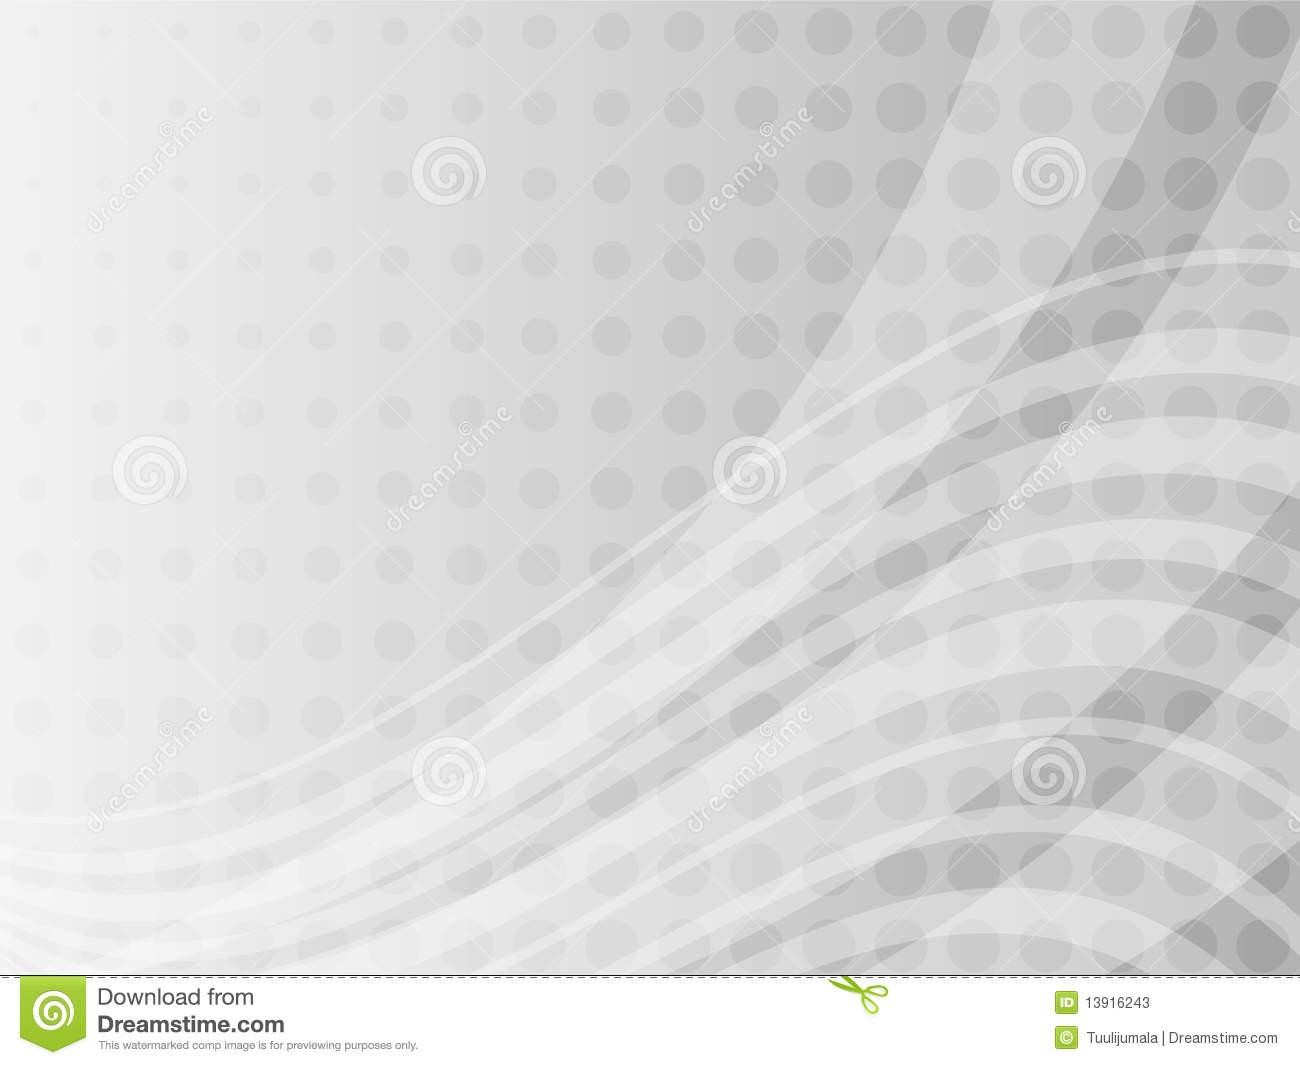 Background image grayscale - Abstract Background Dots Grayscale